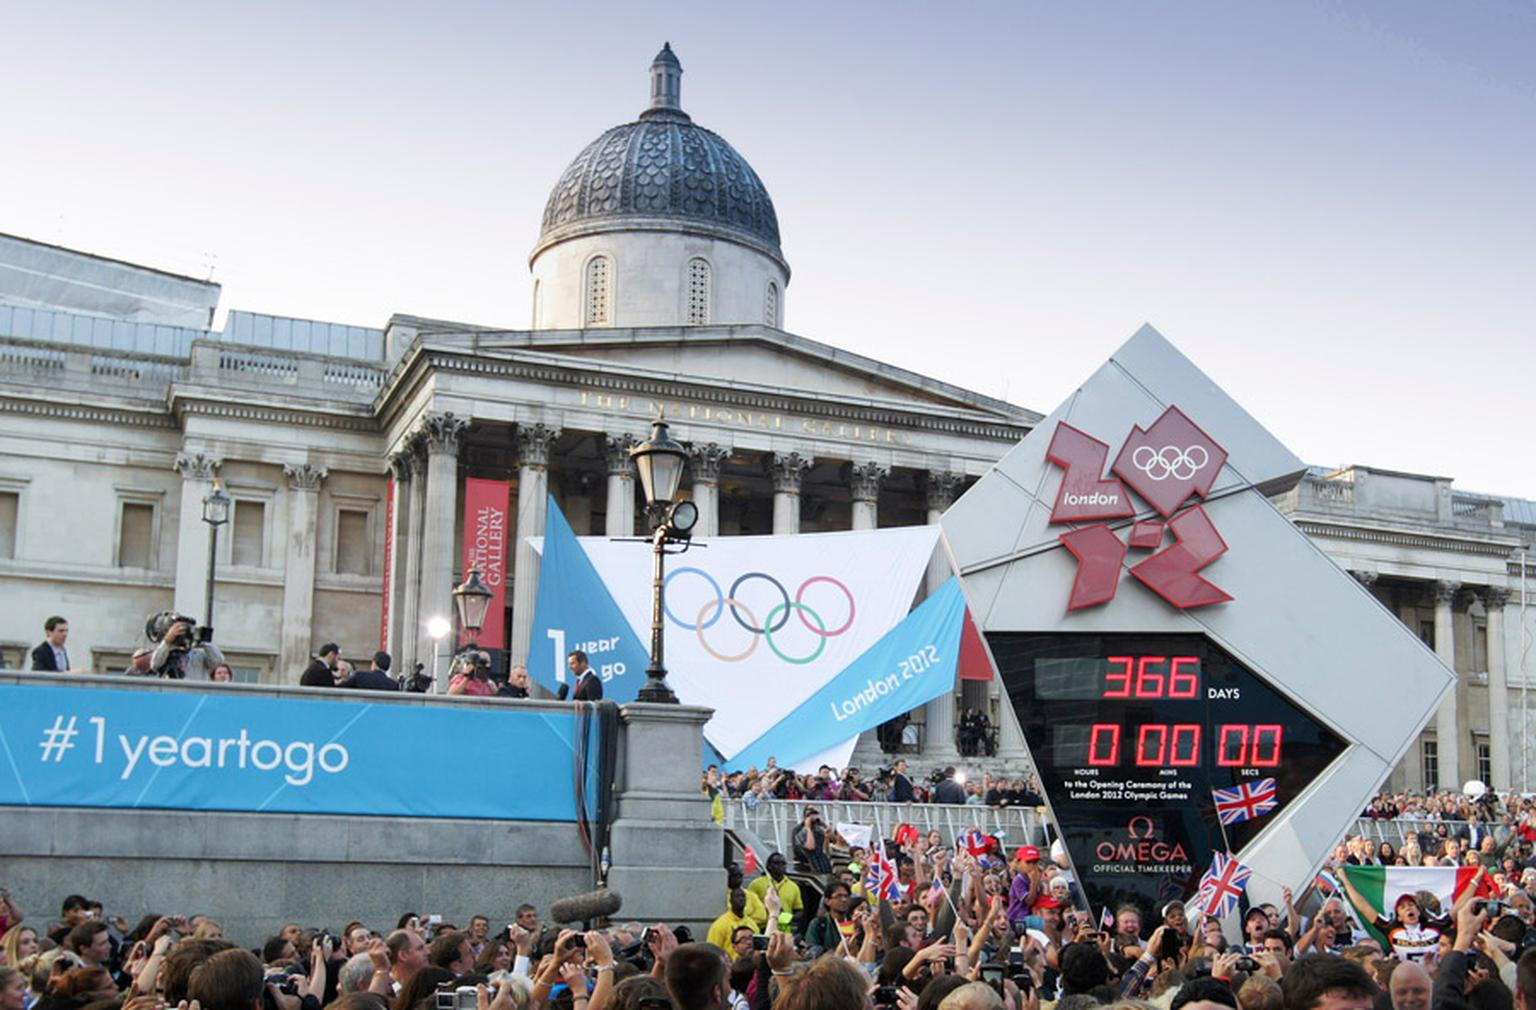 OMEGA_Countdown_Clock_at_Trafalgar_Square_1_year_to_go.jpg